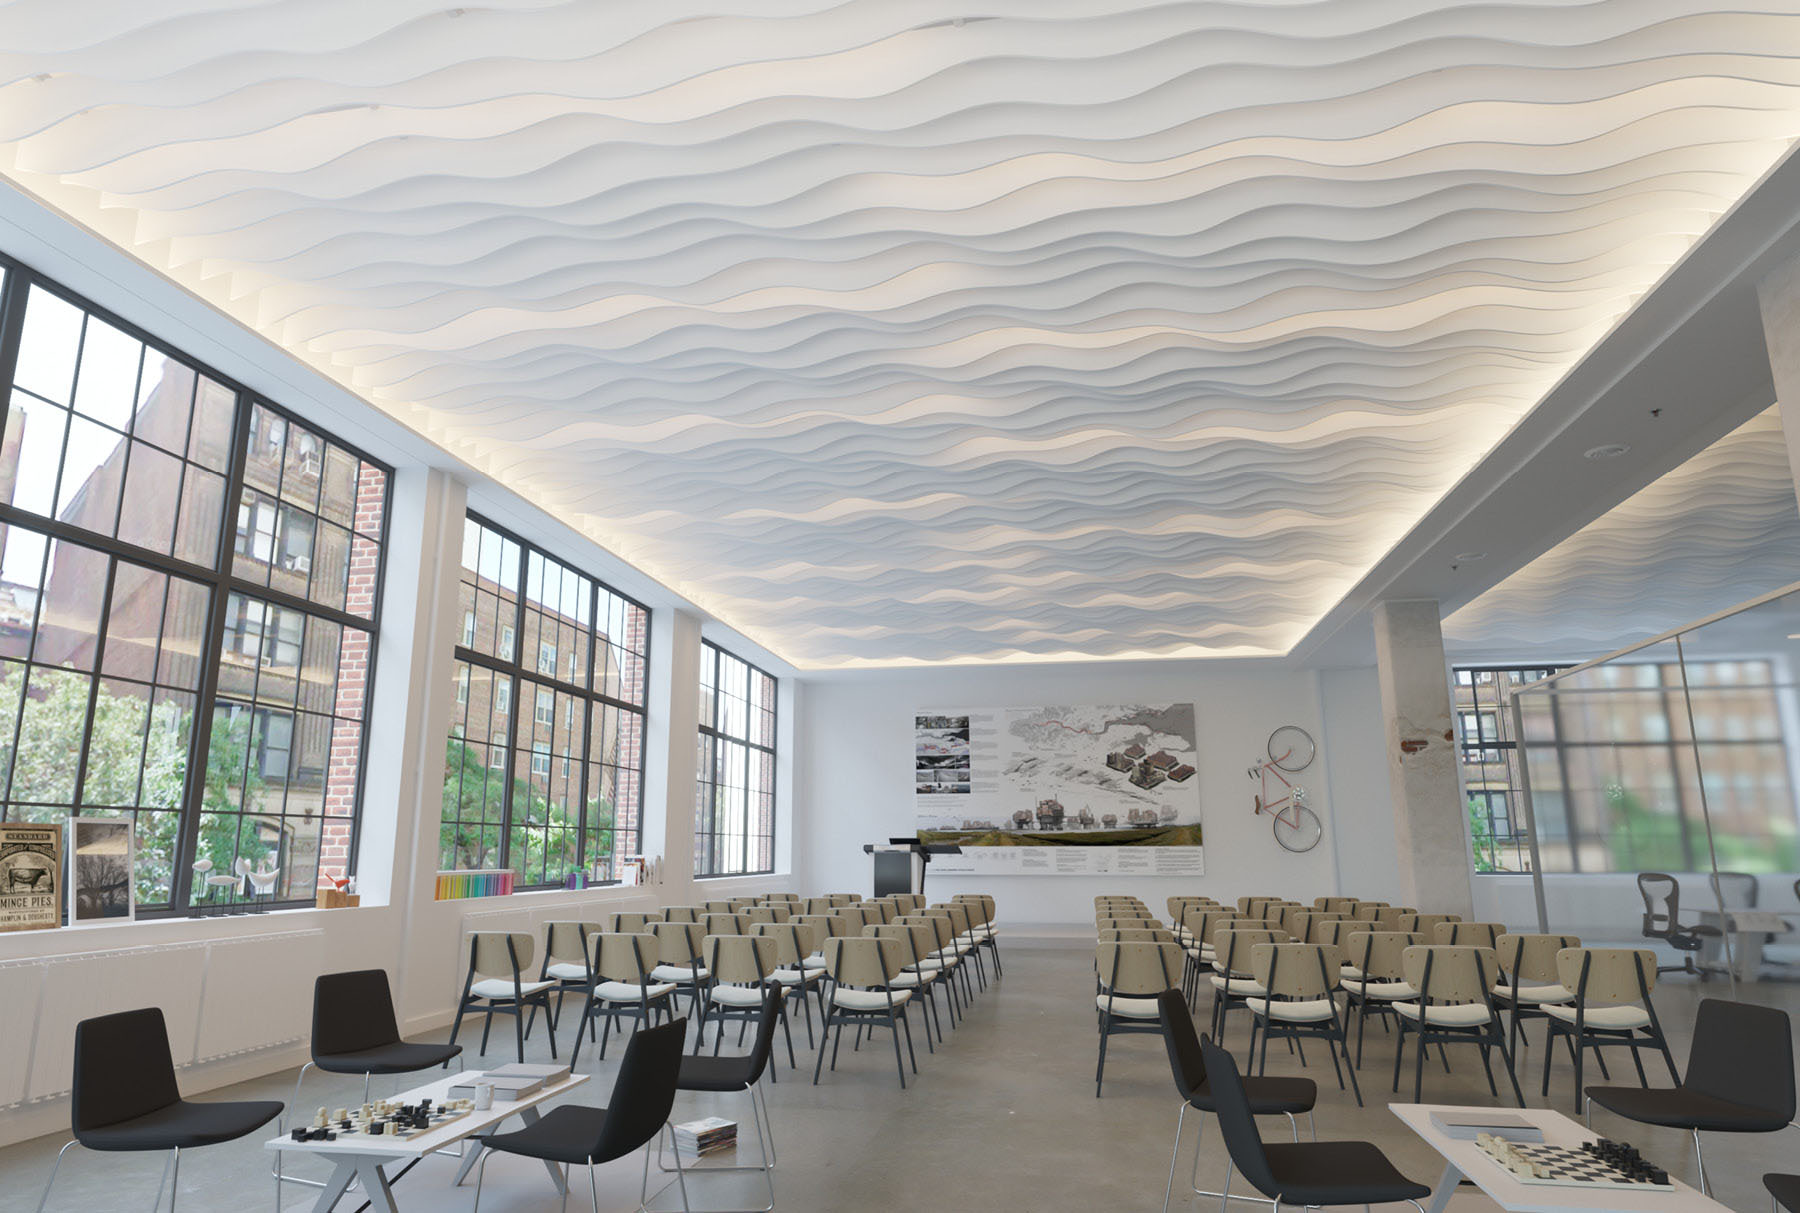 Atmosphera® Standard Surf above lecture space.